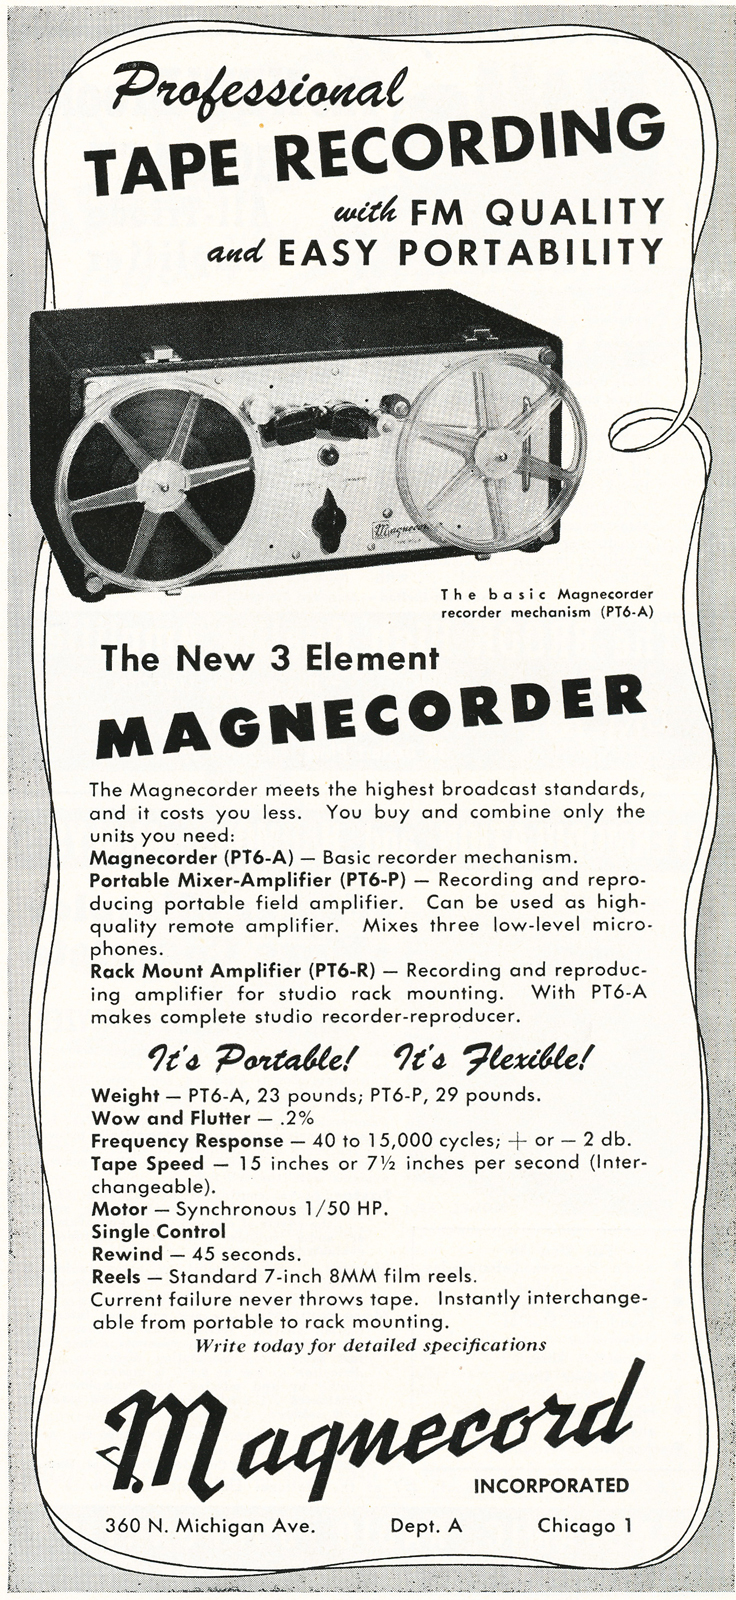 1948 ad for the Magnecord reel to reel tape recorder in the Reel2ReelTexas.com MOMSR vintage recording collection